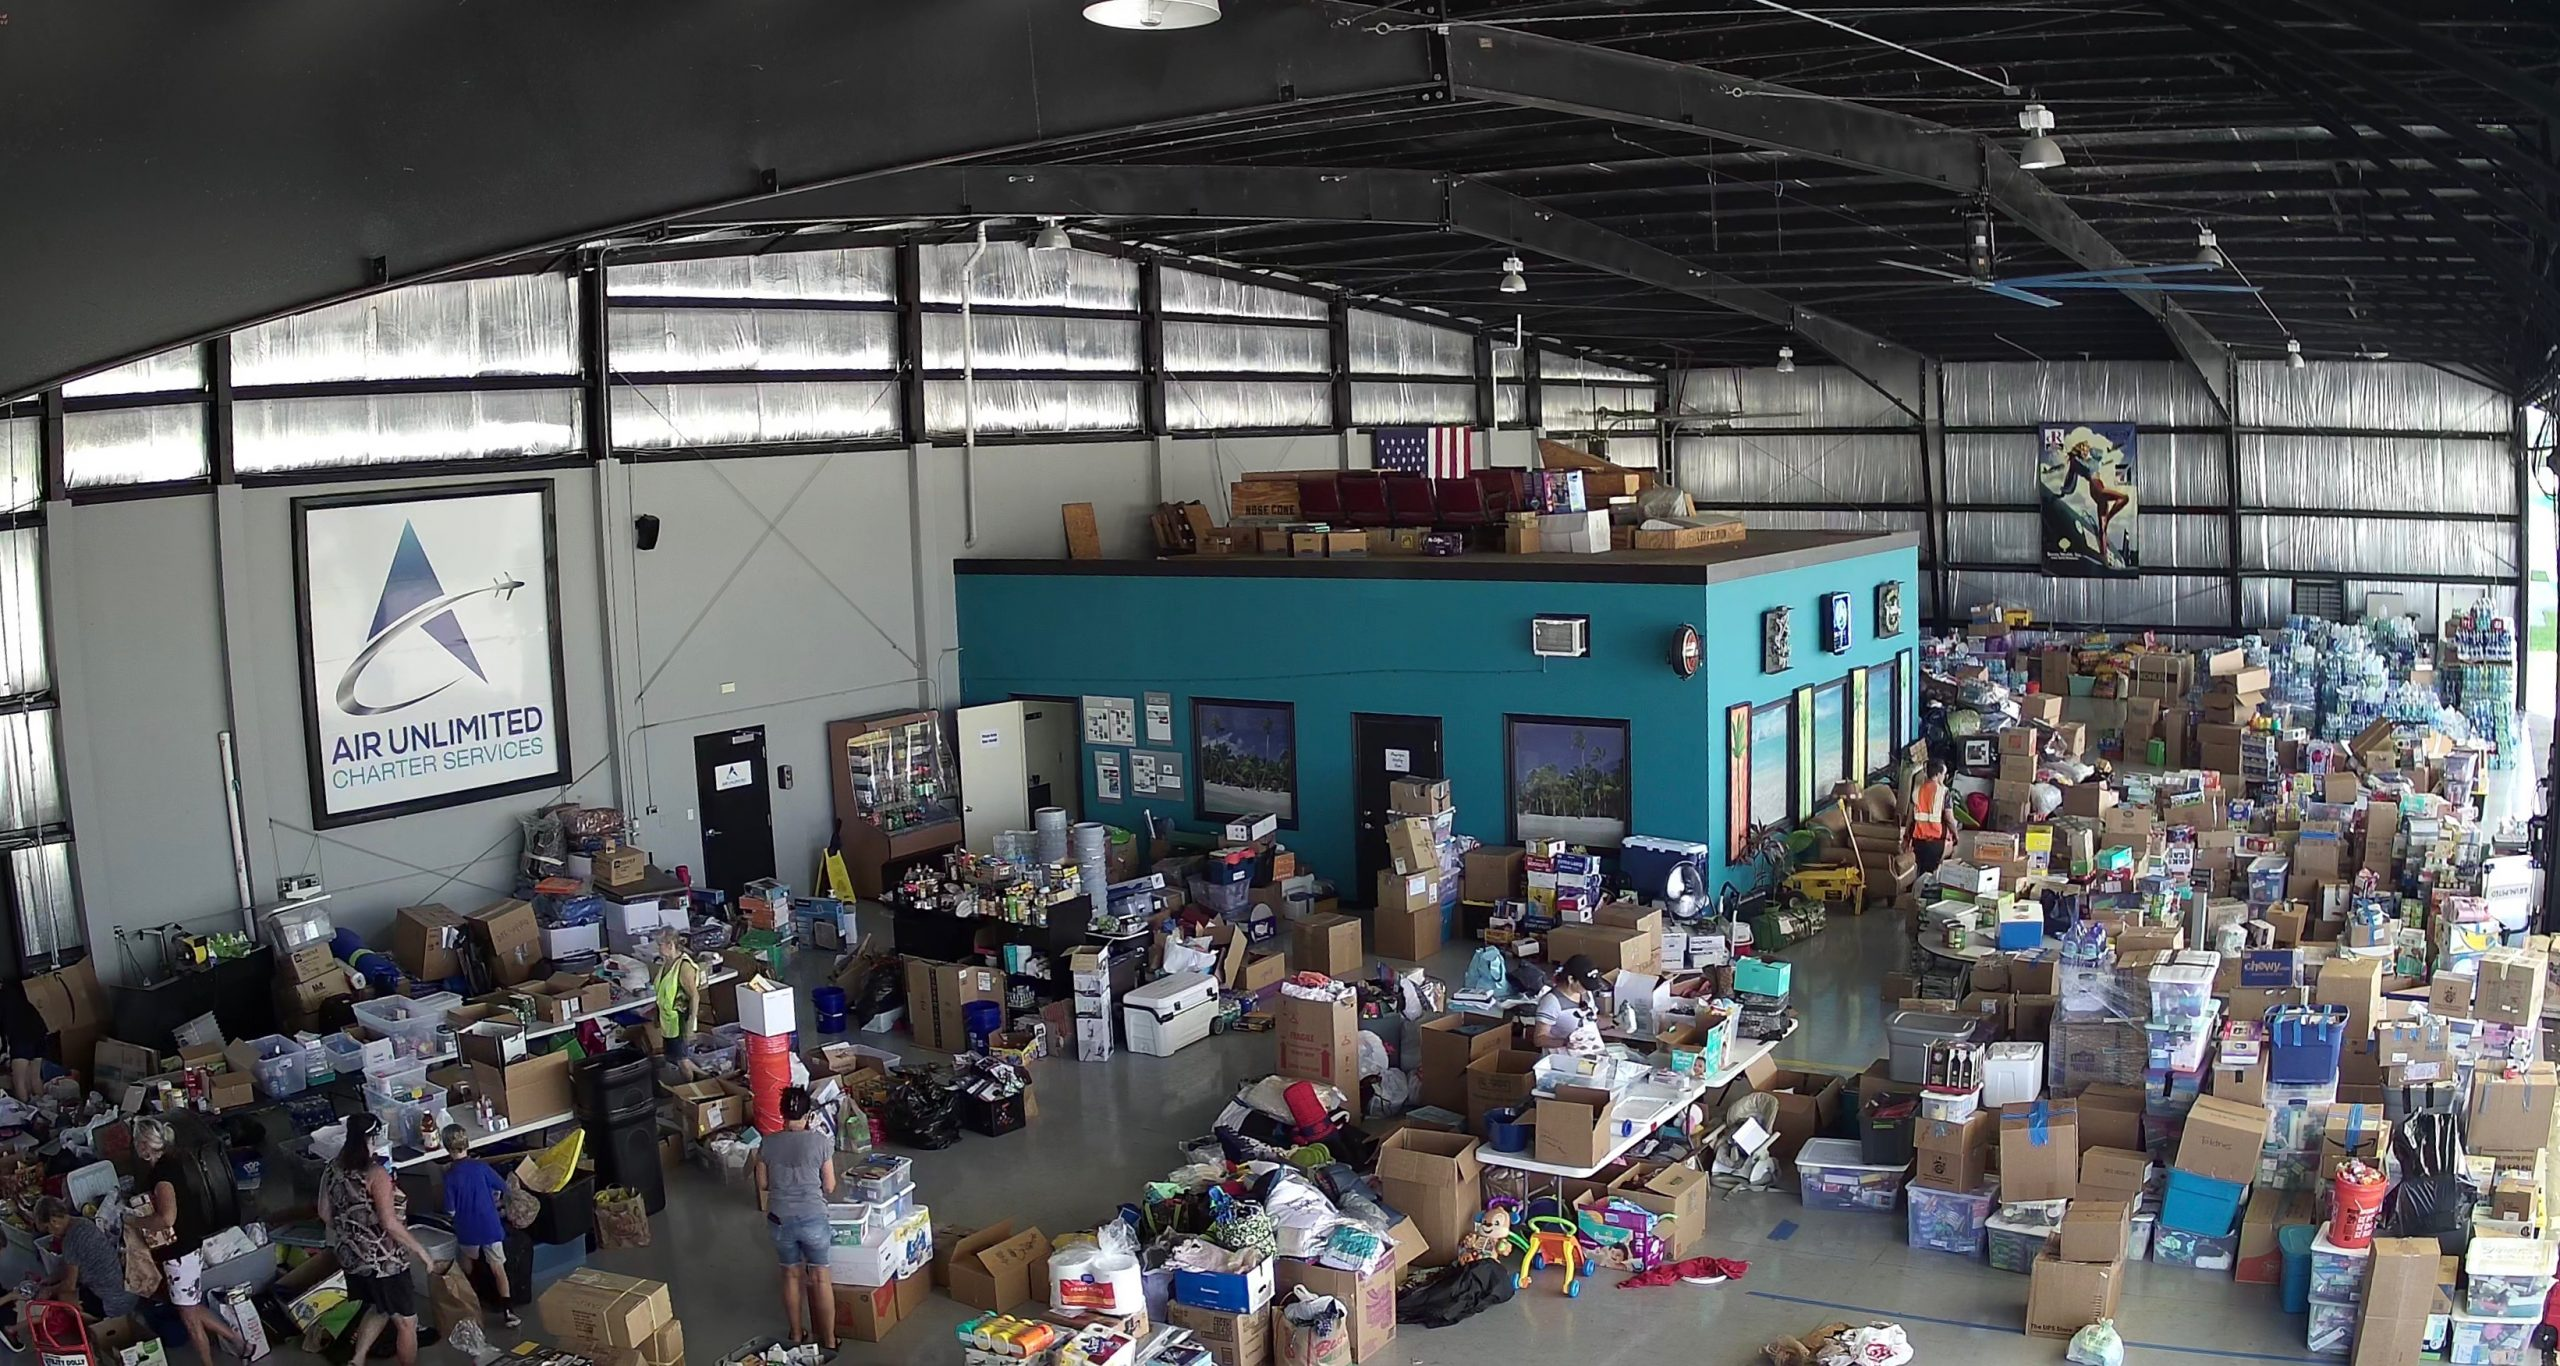 Warehouse full of donated supplies